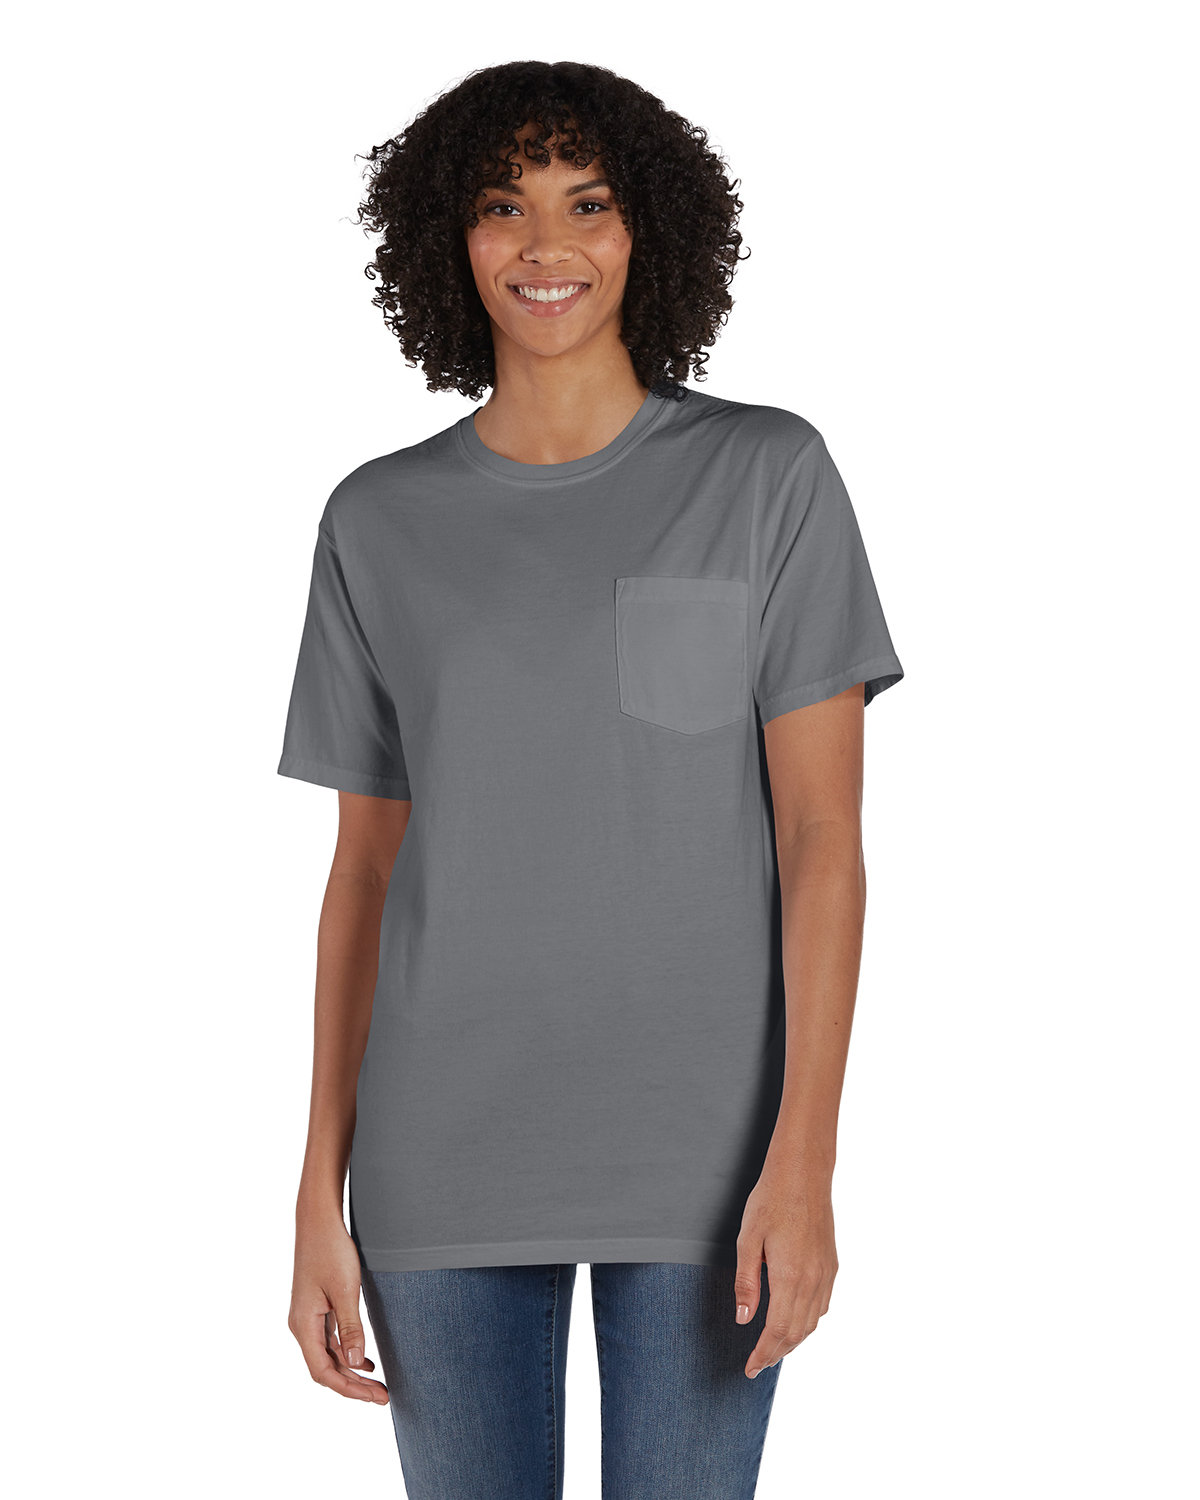 ComfortWash by Hanes Unisex Garment-Dyed T-Shirt with Pocket CONCRETE